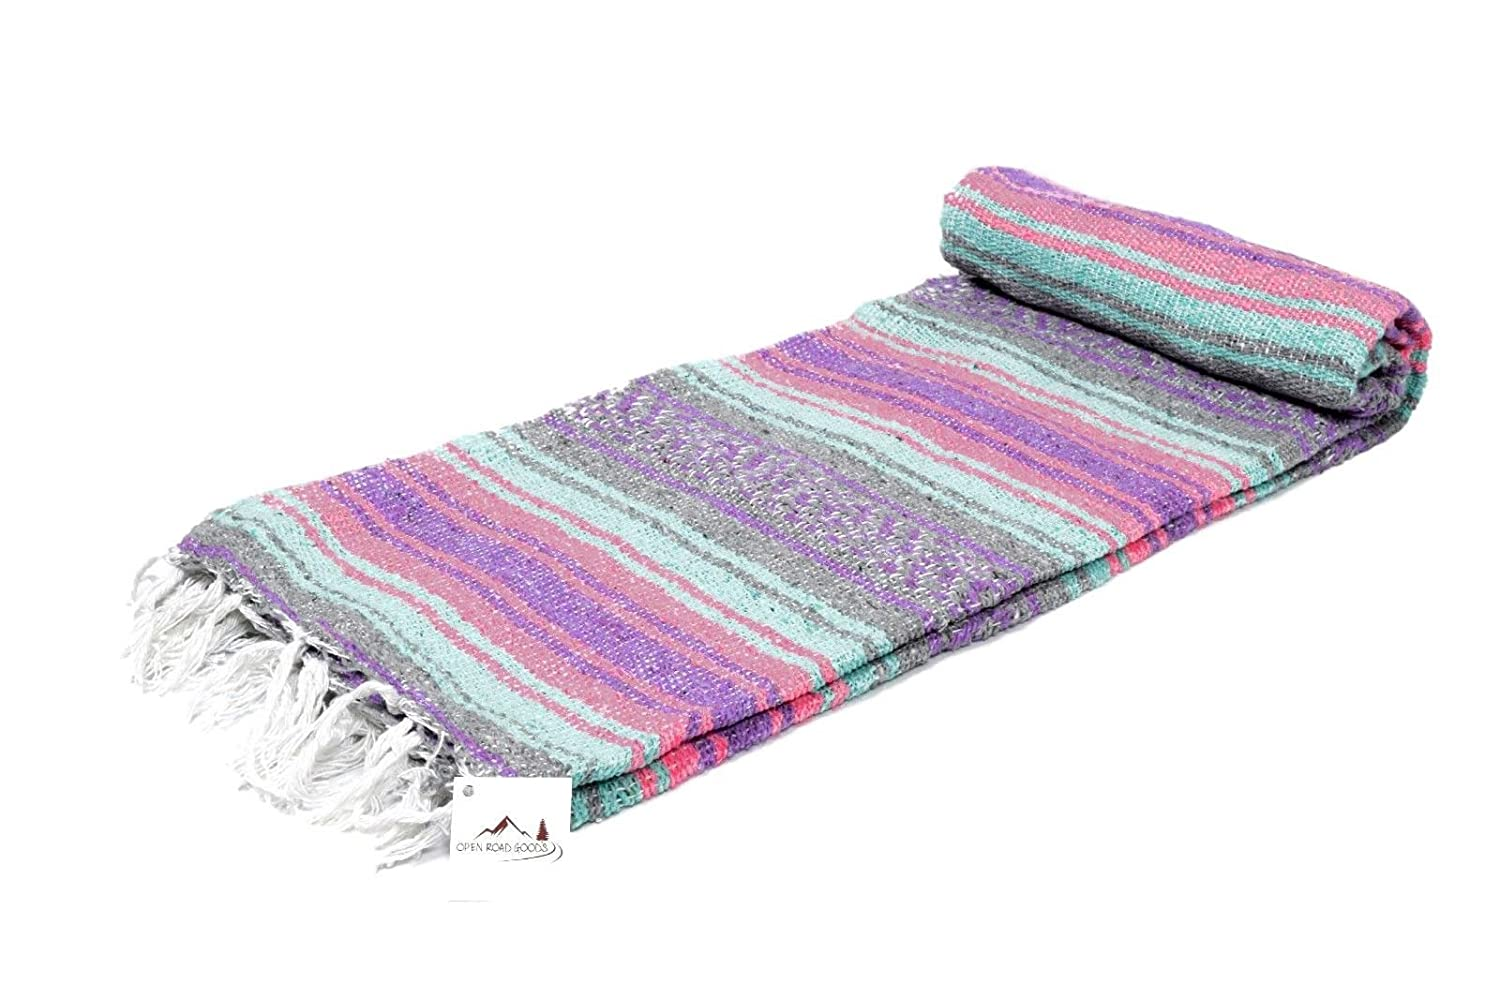 Open Road Goods Mexican Blanket - Pastel Vintage Boho Colors. Great Yoga Blanket, Beach Blanket, Picnic Blanket, or a Throw! Handmade